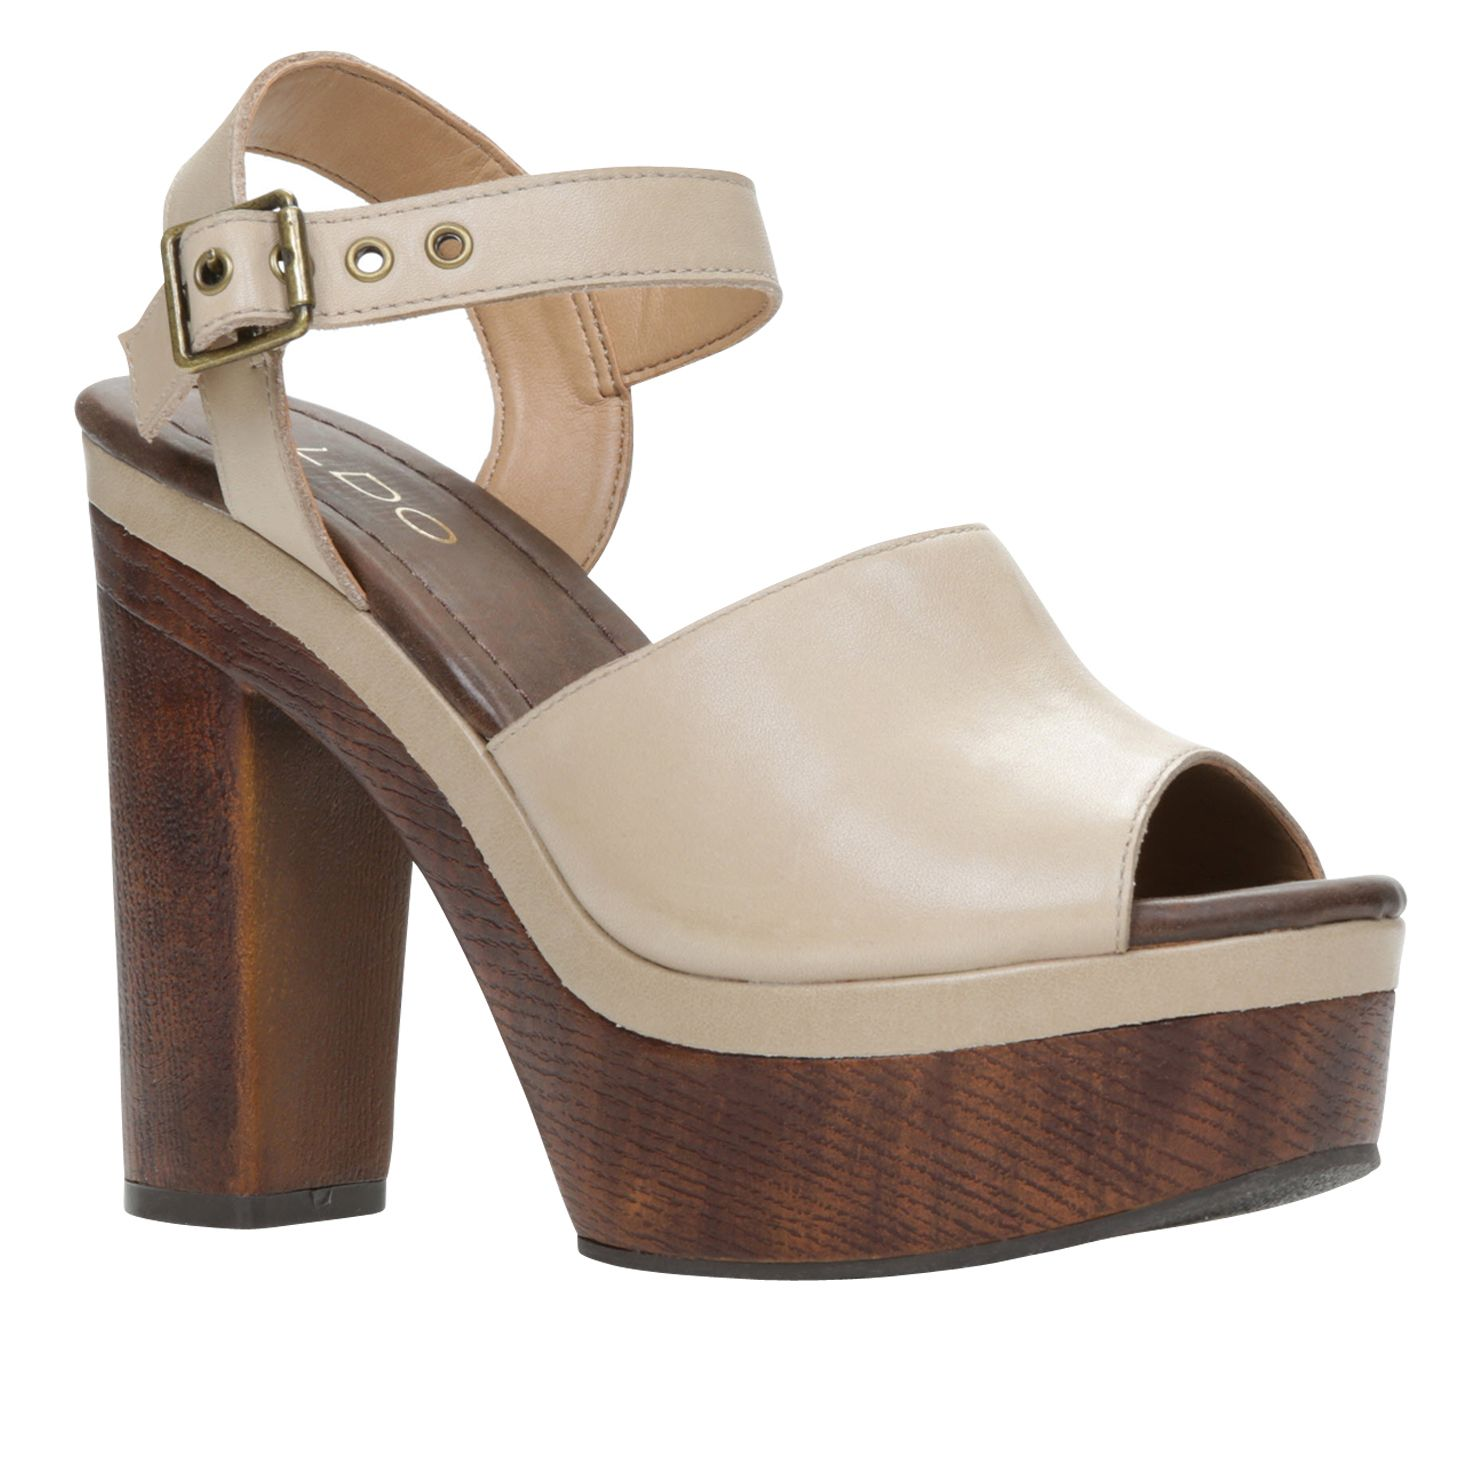 Ybirwen wedge peep toe high heel sandals